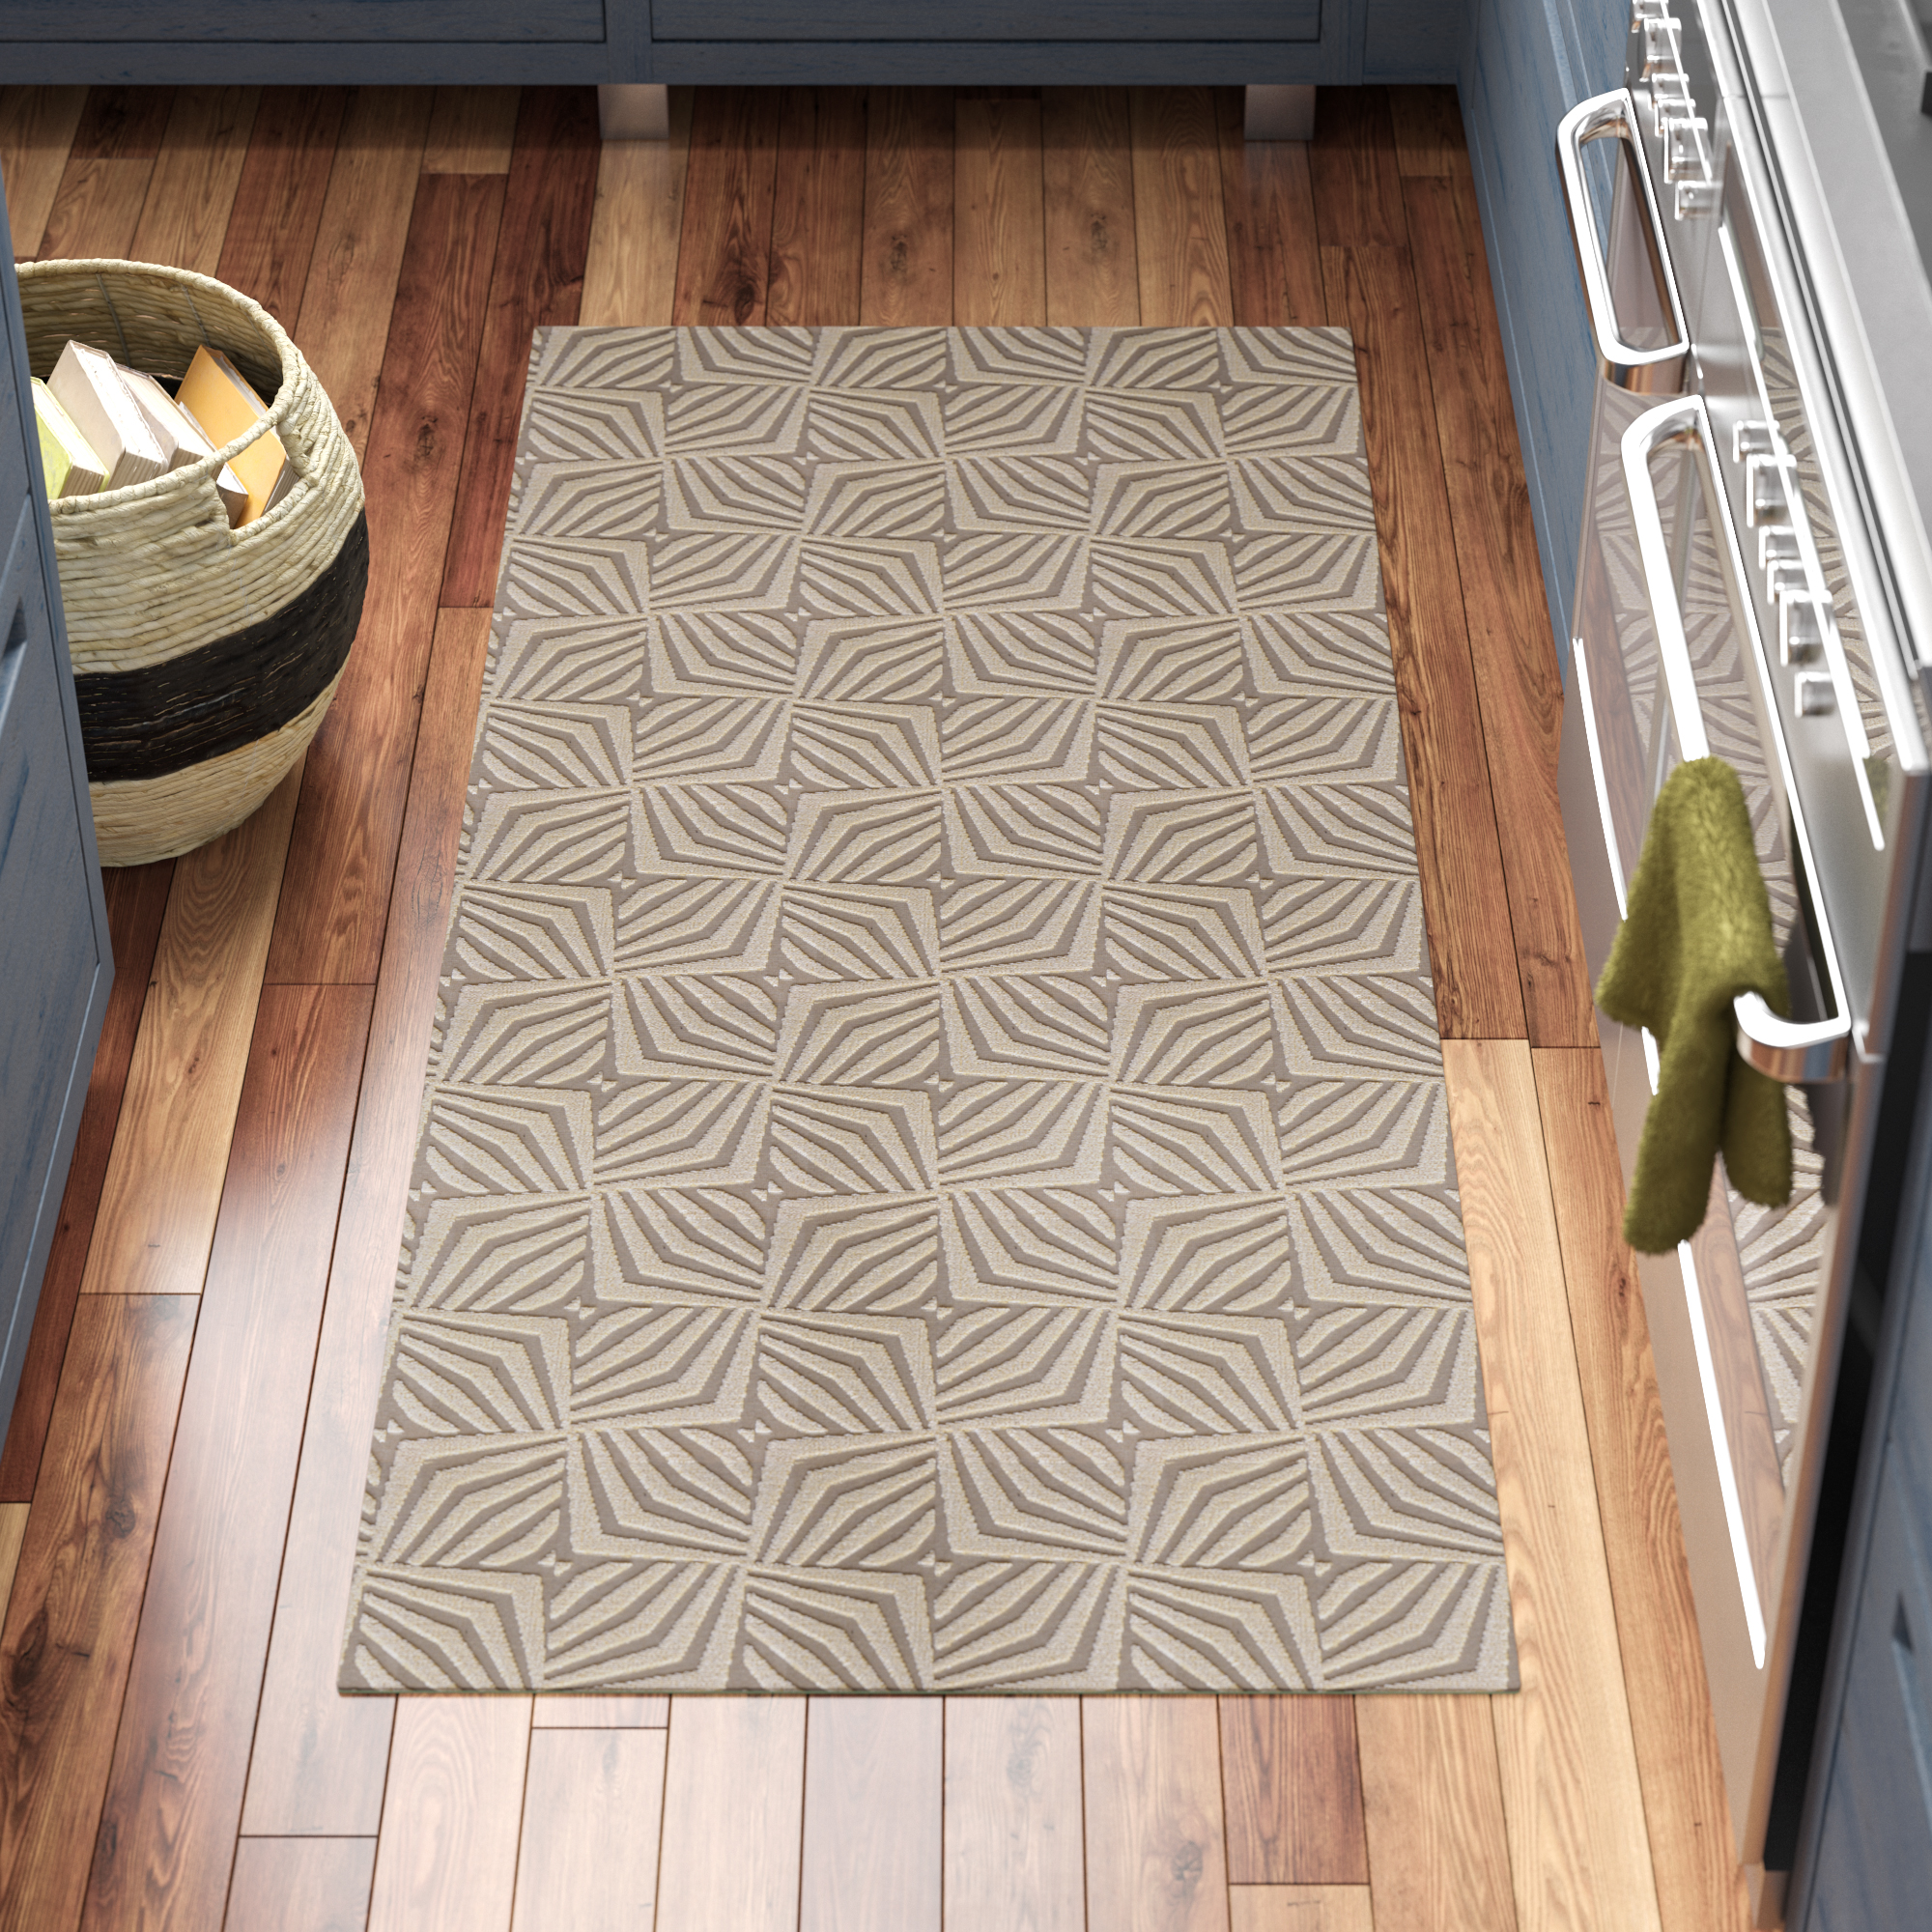 Contemporary Kitchen Rugs: Uniquely Modern Rugs